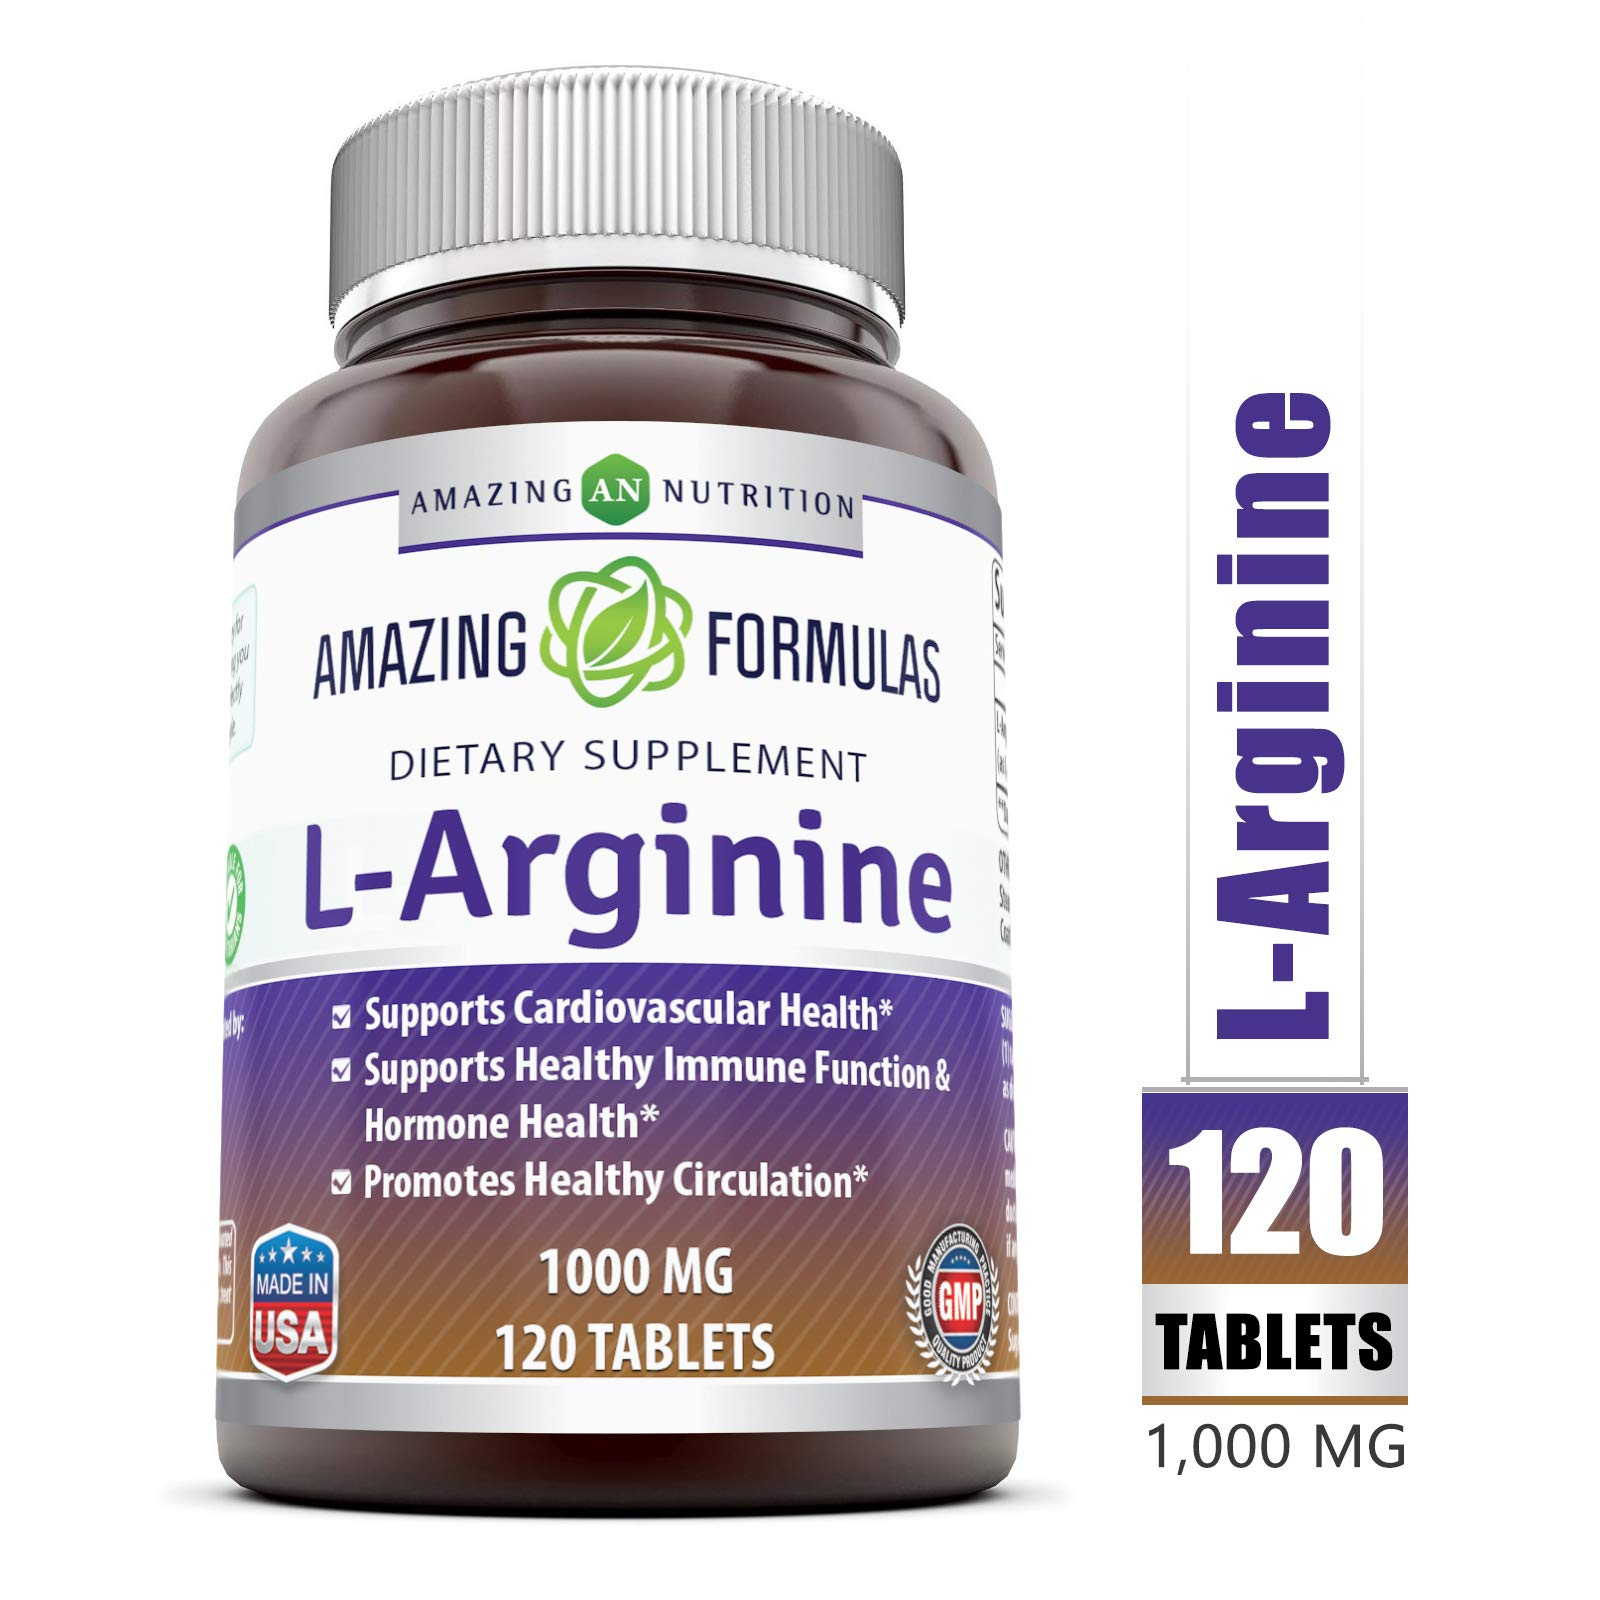 Amazing Nutrition L-Arginine 1000mg Supplement - Best Amino Acid Arginine HCL Supplements for Women & Man - Promotes Circulation and Supports Cardiovascular Health - 120 Tablets by Amazing Nutrition